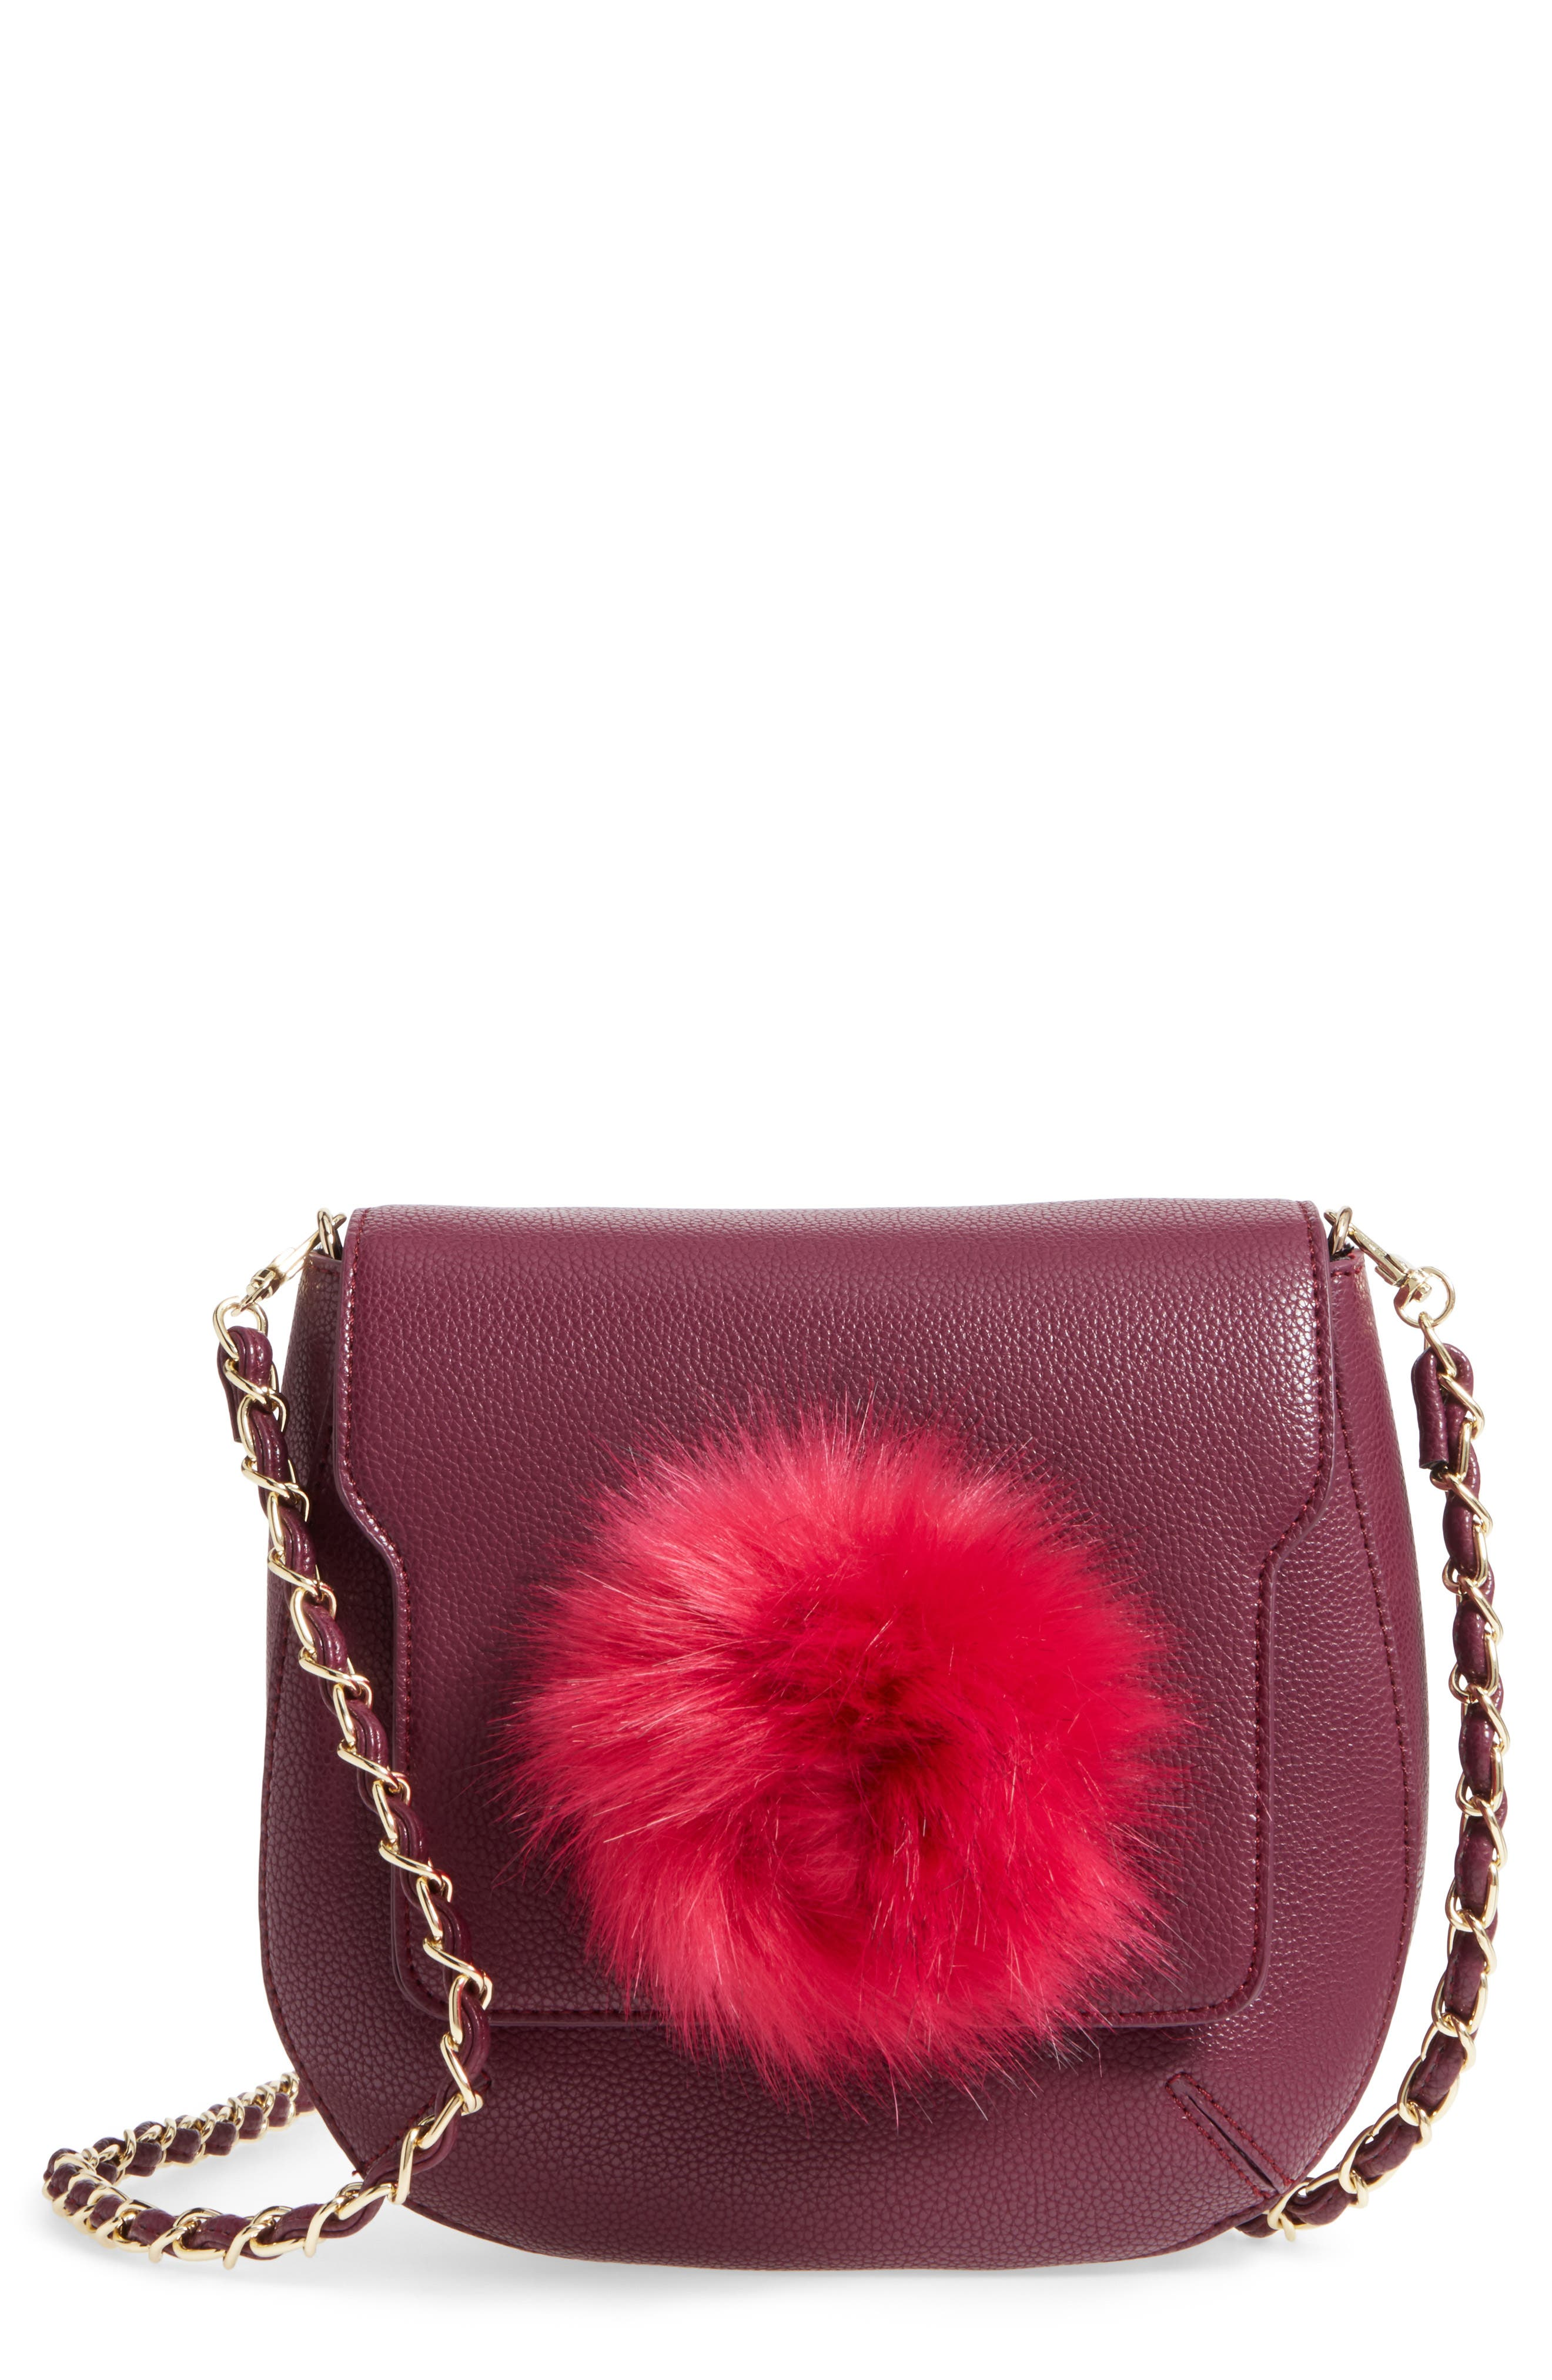 Isa Faux Leather Crossbody Bag,                             Main thumbnail 1, color,                             Berry Sweet/ Boysenberry